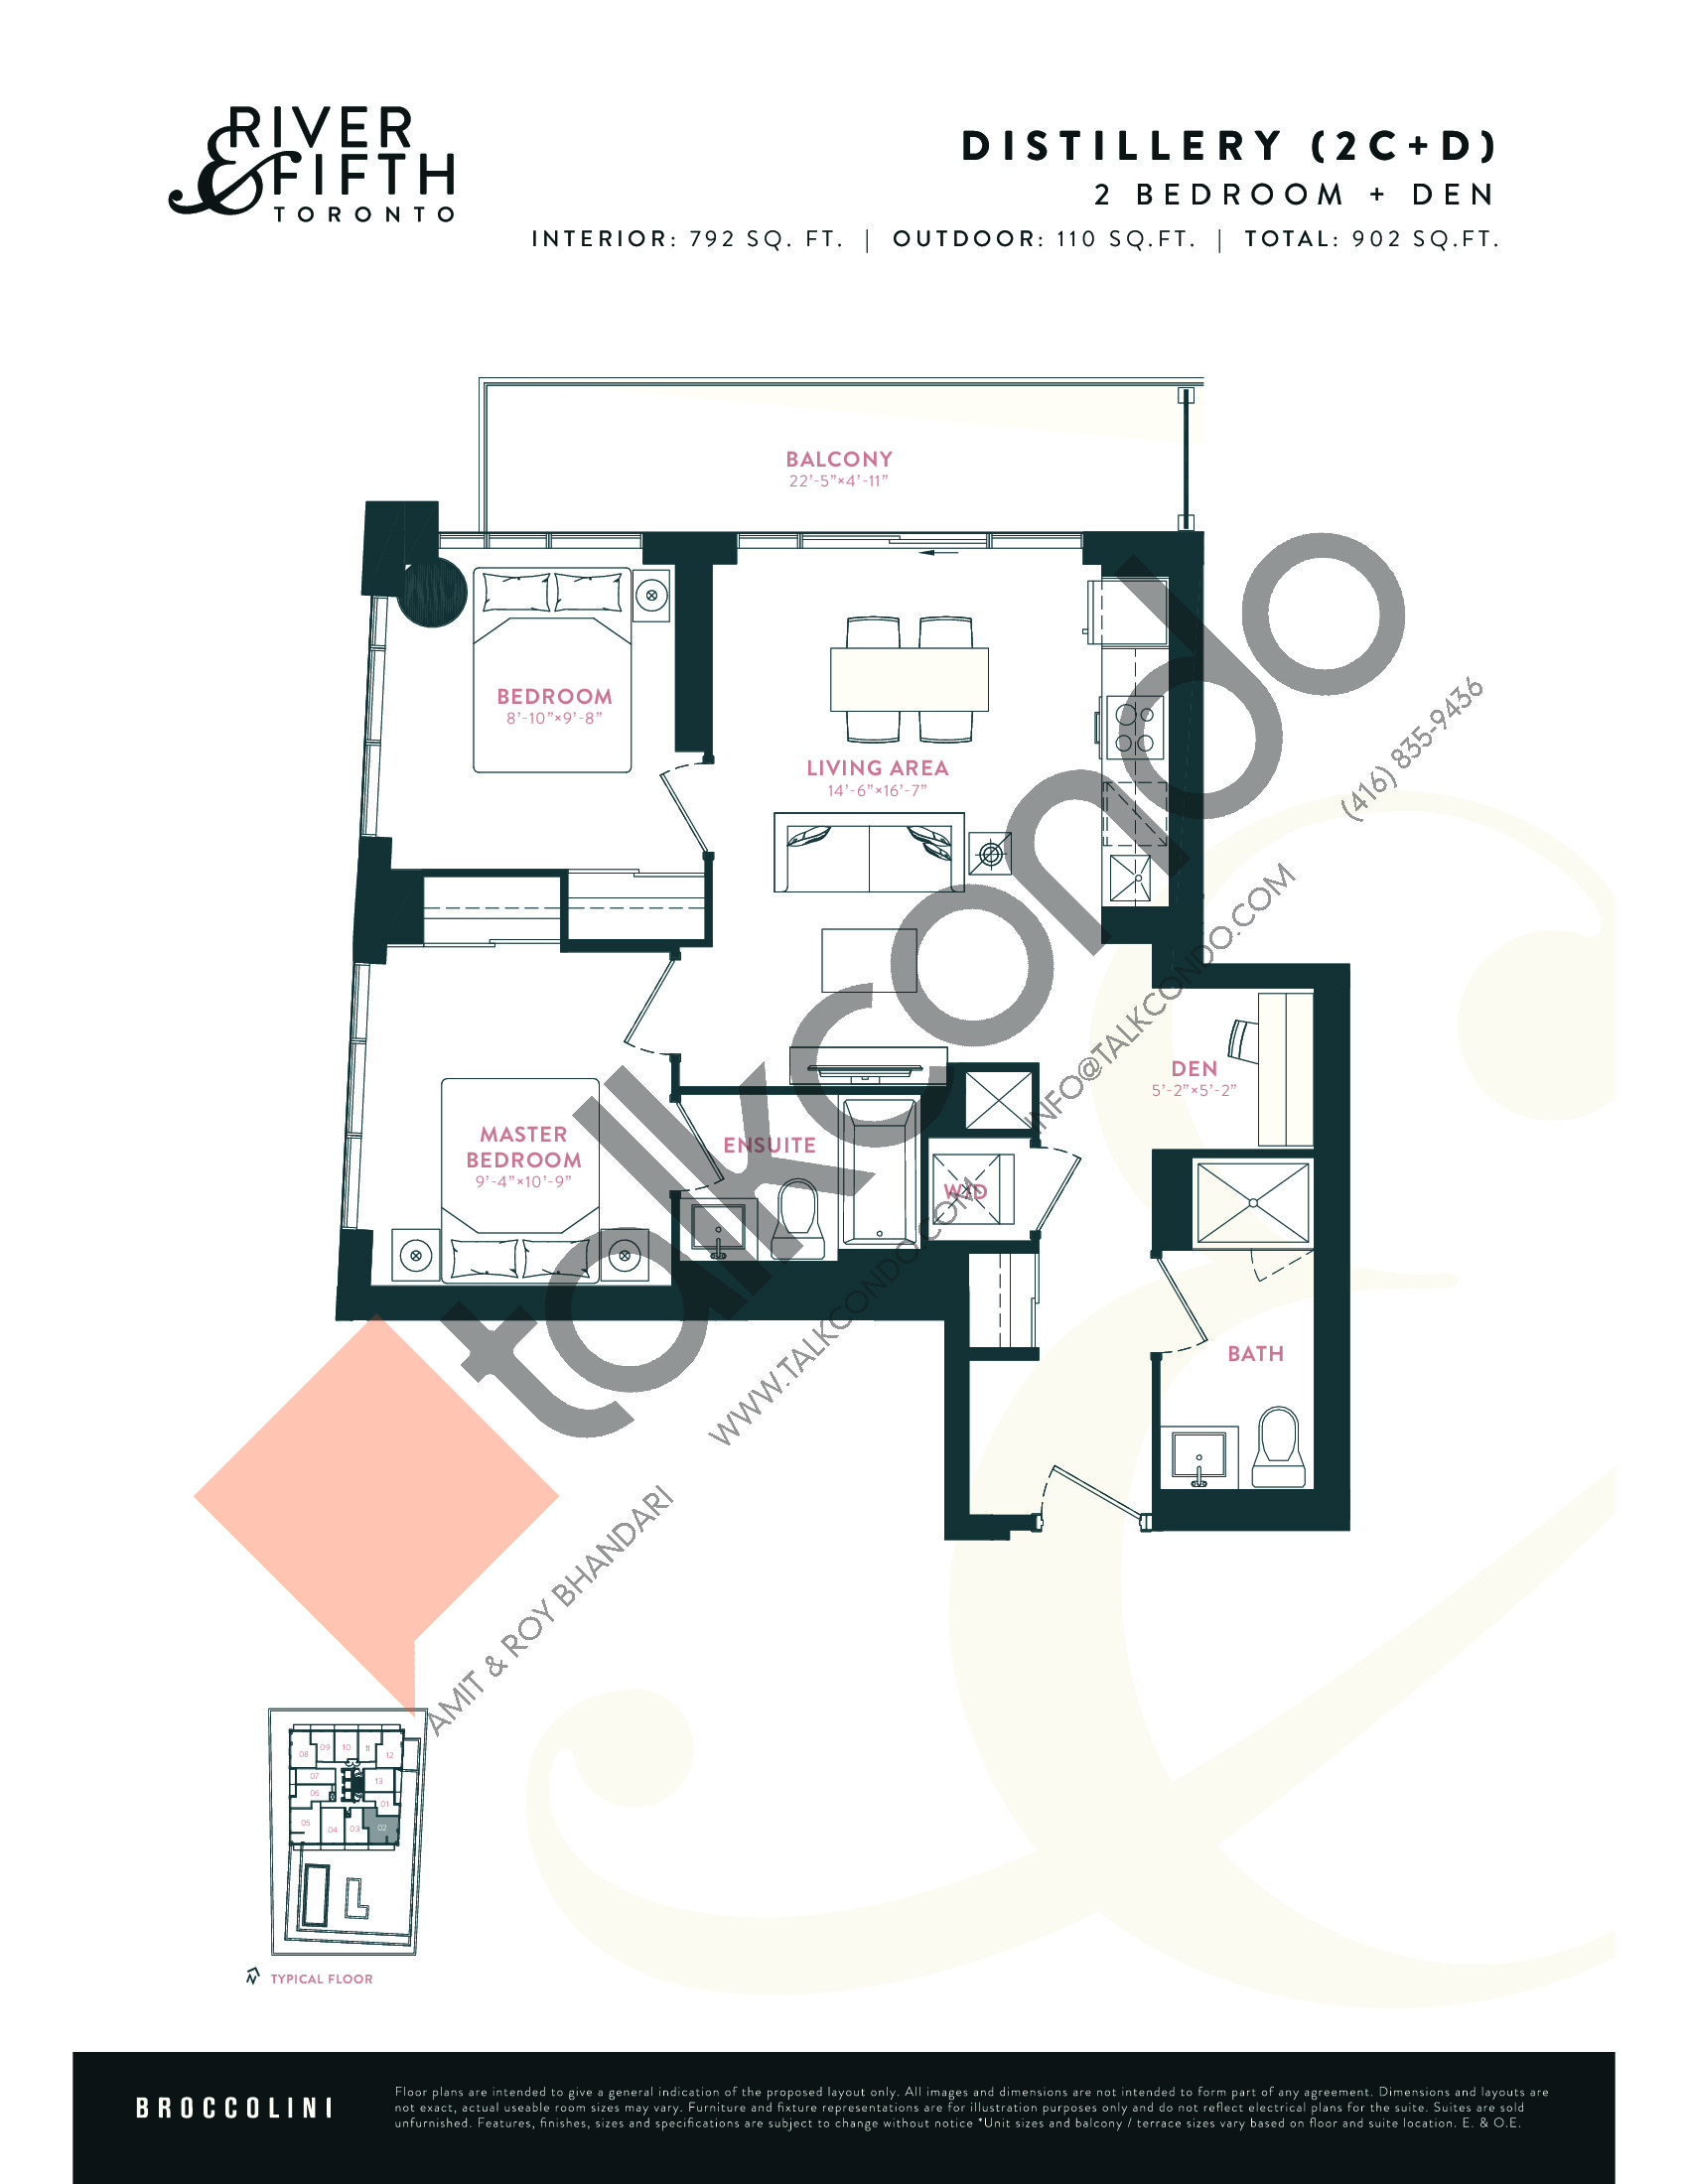 Distillery (2C+D) Floor Plan at River & Fifth Condos - 792 sq.ft